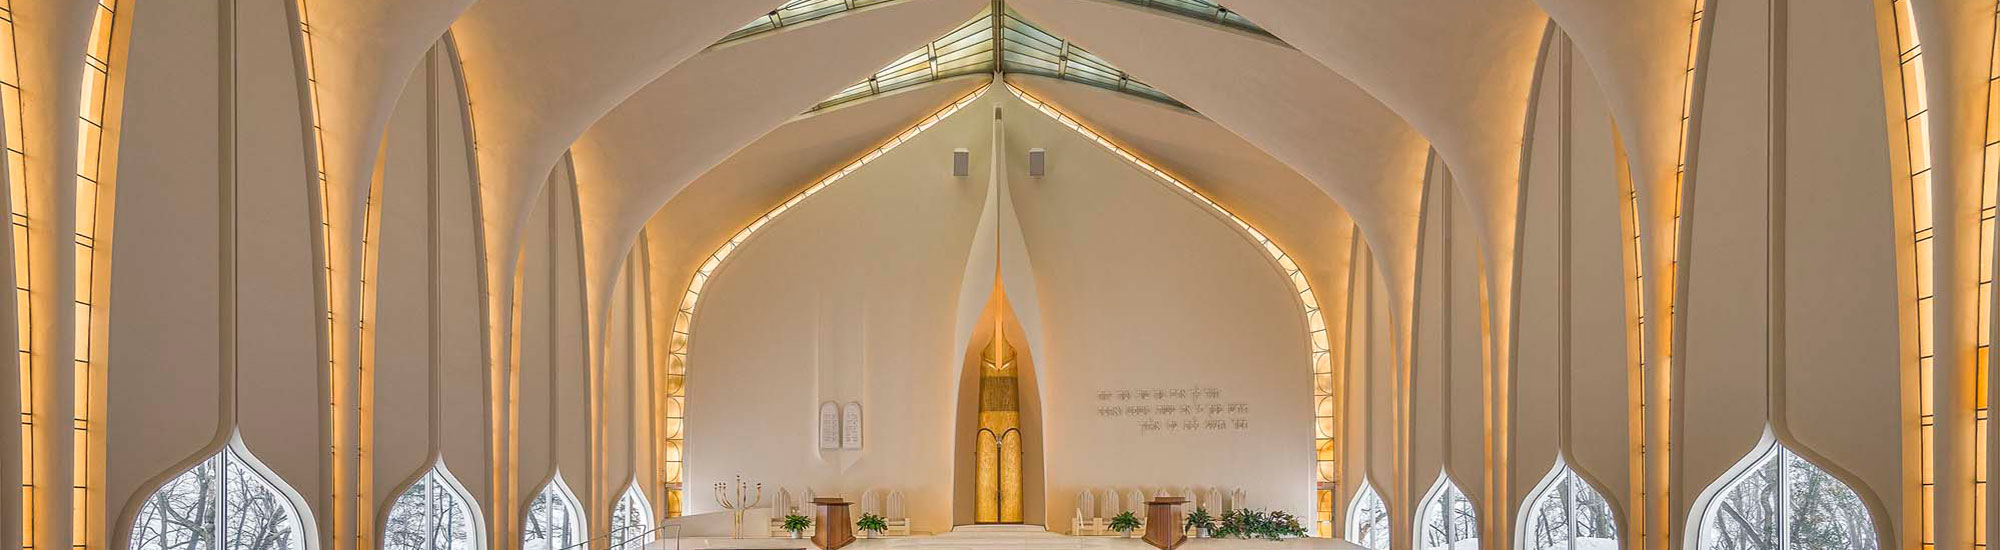 """<span class=""""slider_title"""">                                     large sanctuary                                </span>                                                                                                                                                                                       <span class=""""slider_description"""">Designed by the architect of the World Trade Center, Minoru Yamasaki, the iconic Large Sanctuary is world renowned for its dramatic soaring ceilings, lily shaped windows, and breathtaking white interior bathed in golden light.</span>"""